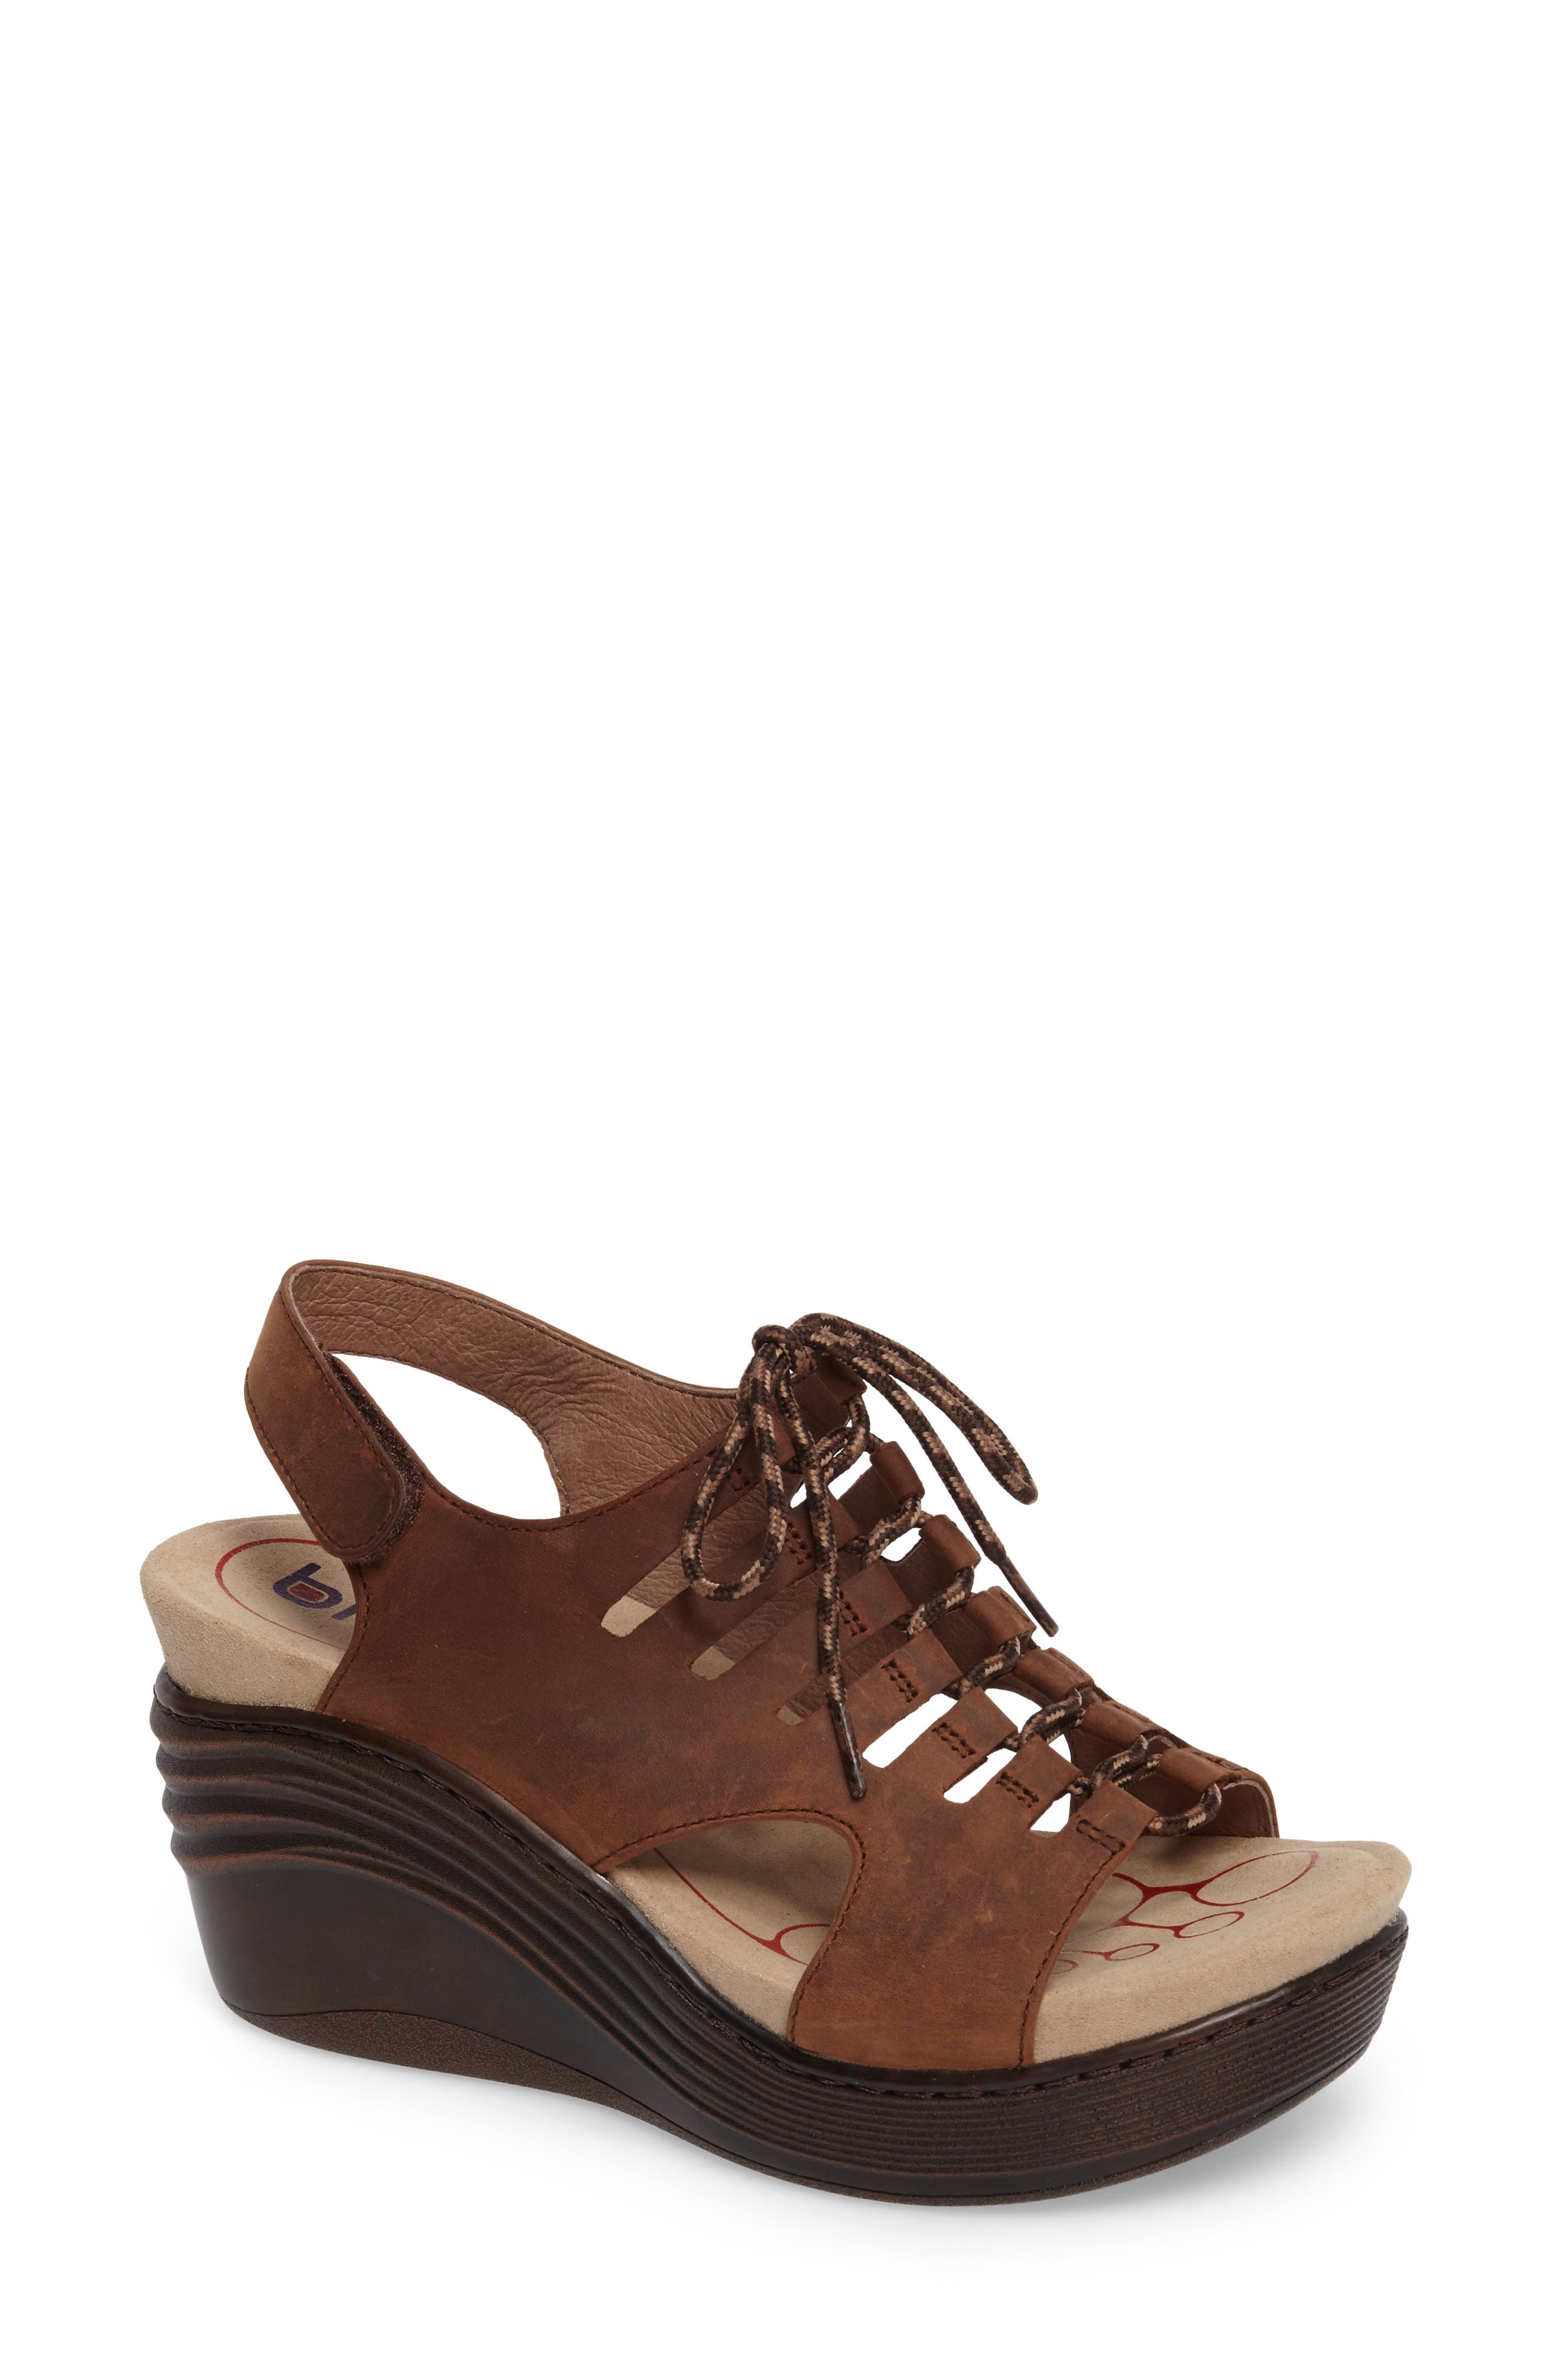 Sirus Wedge Sandal,                             Main thumbnail 1, color,                             Aztec Brown Leather